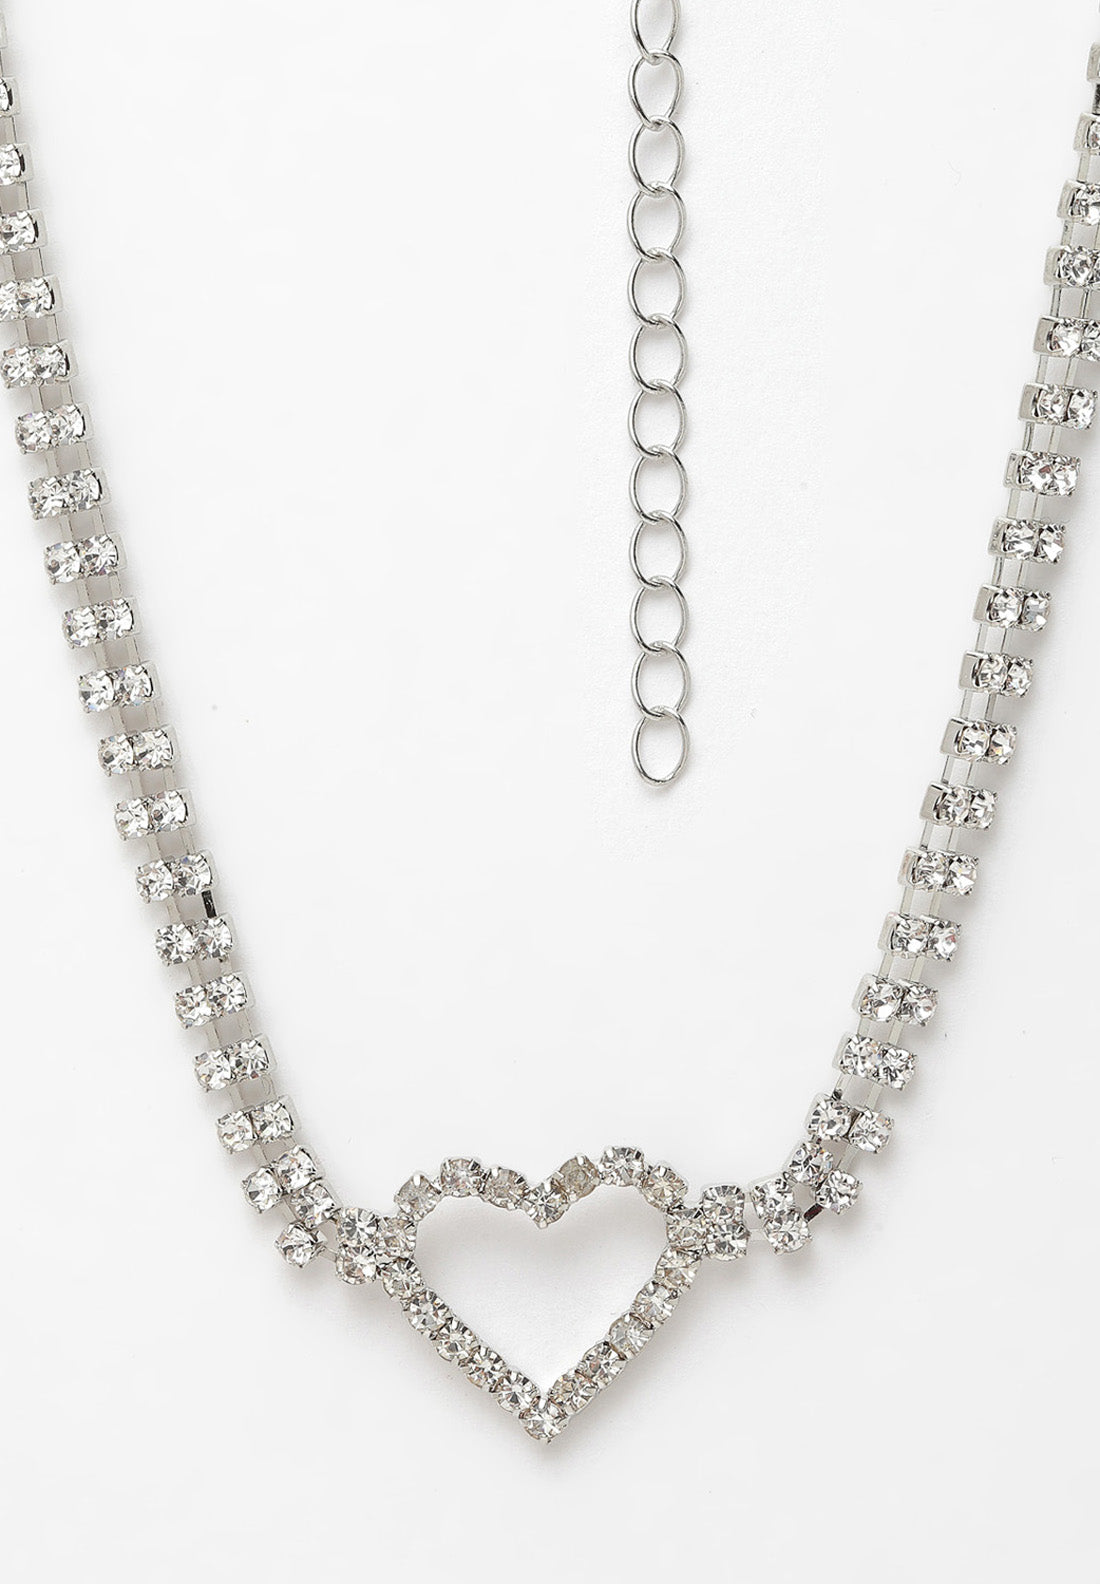 Avant-Garde Paris Silver Heart Crystal Choker Necklace